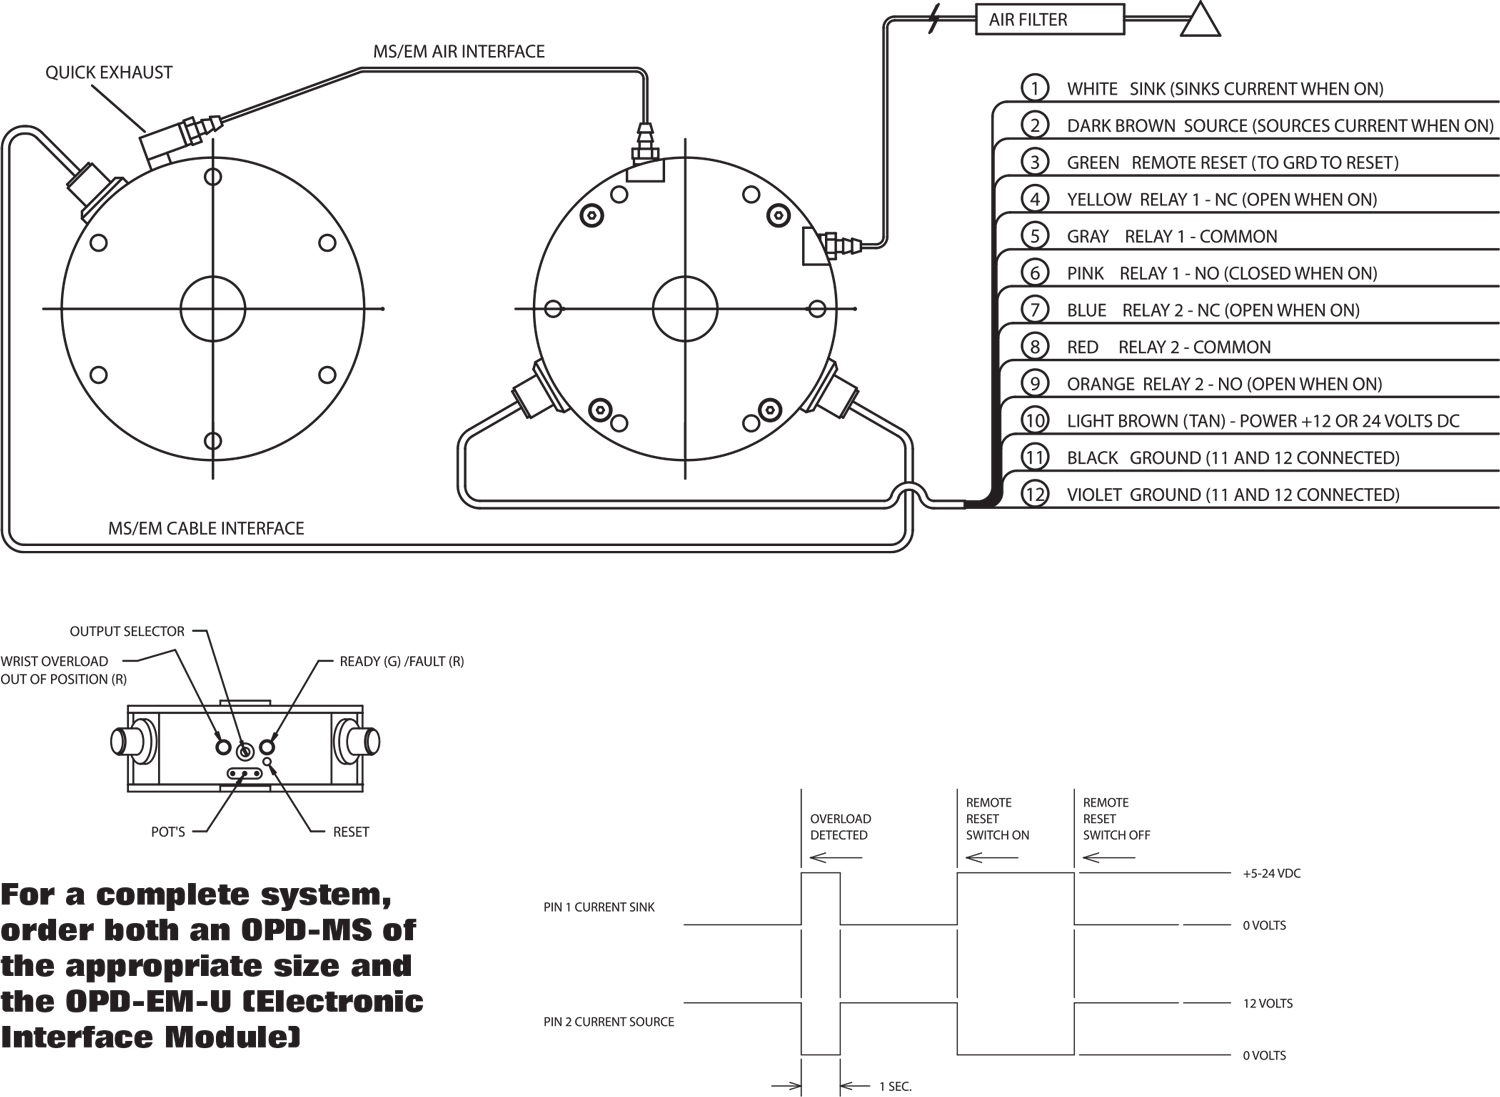 customer-interface-wiring-diagram